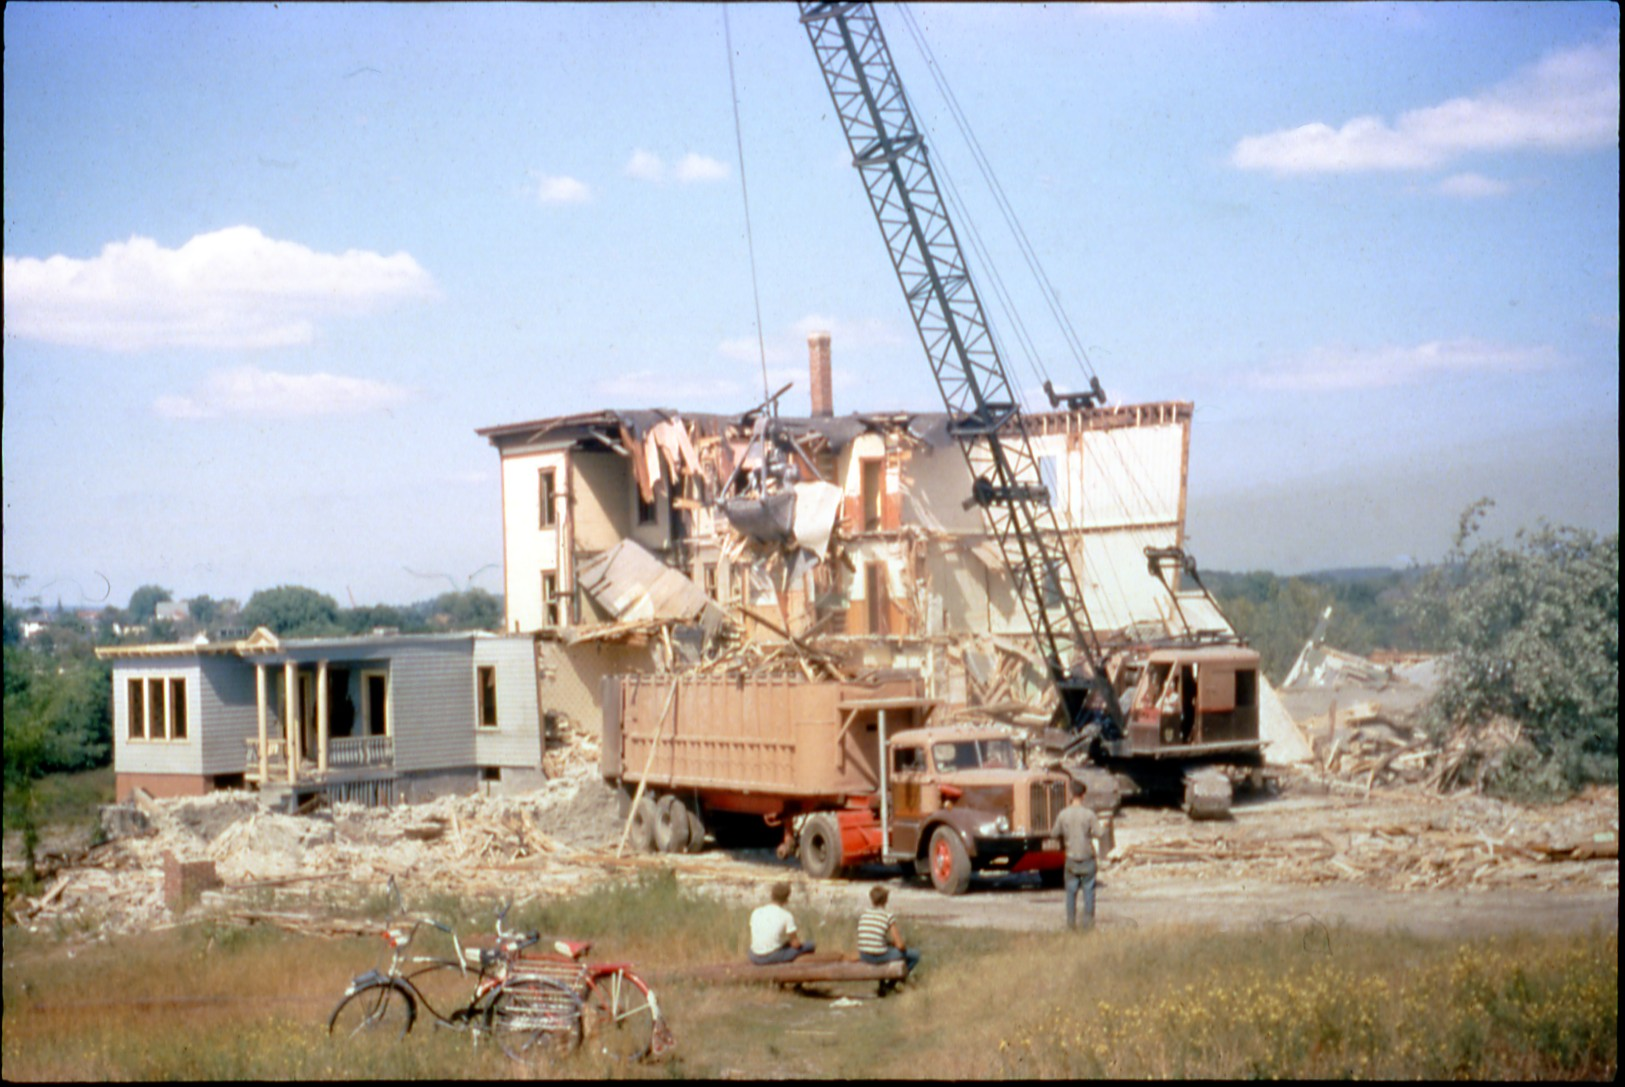 Demolition Little Canda crane.jpg